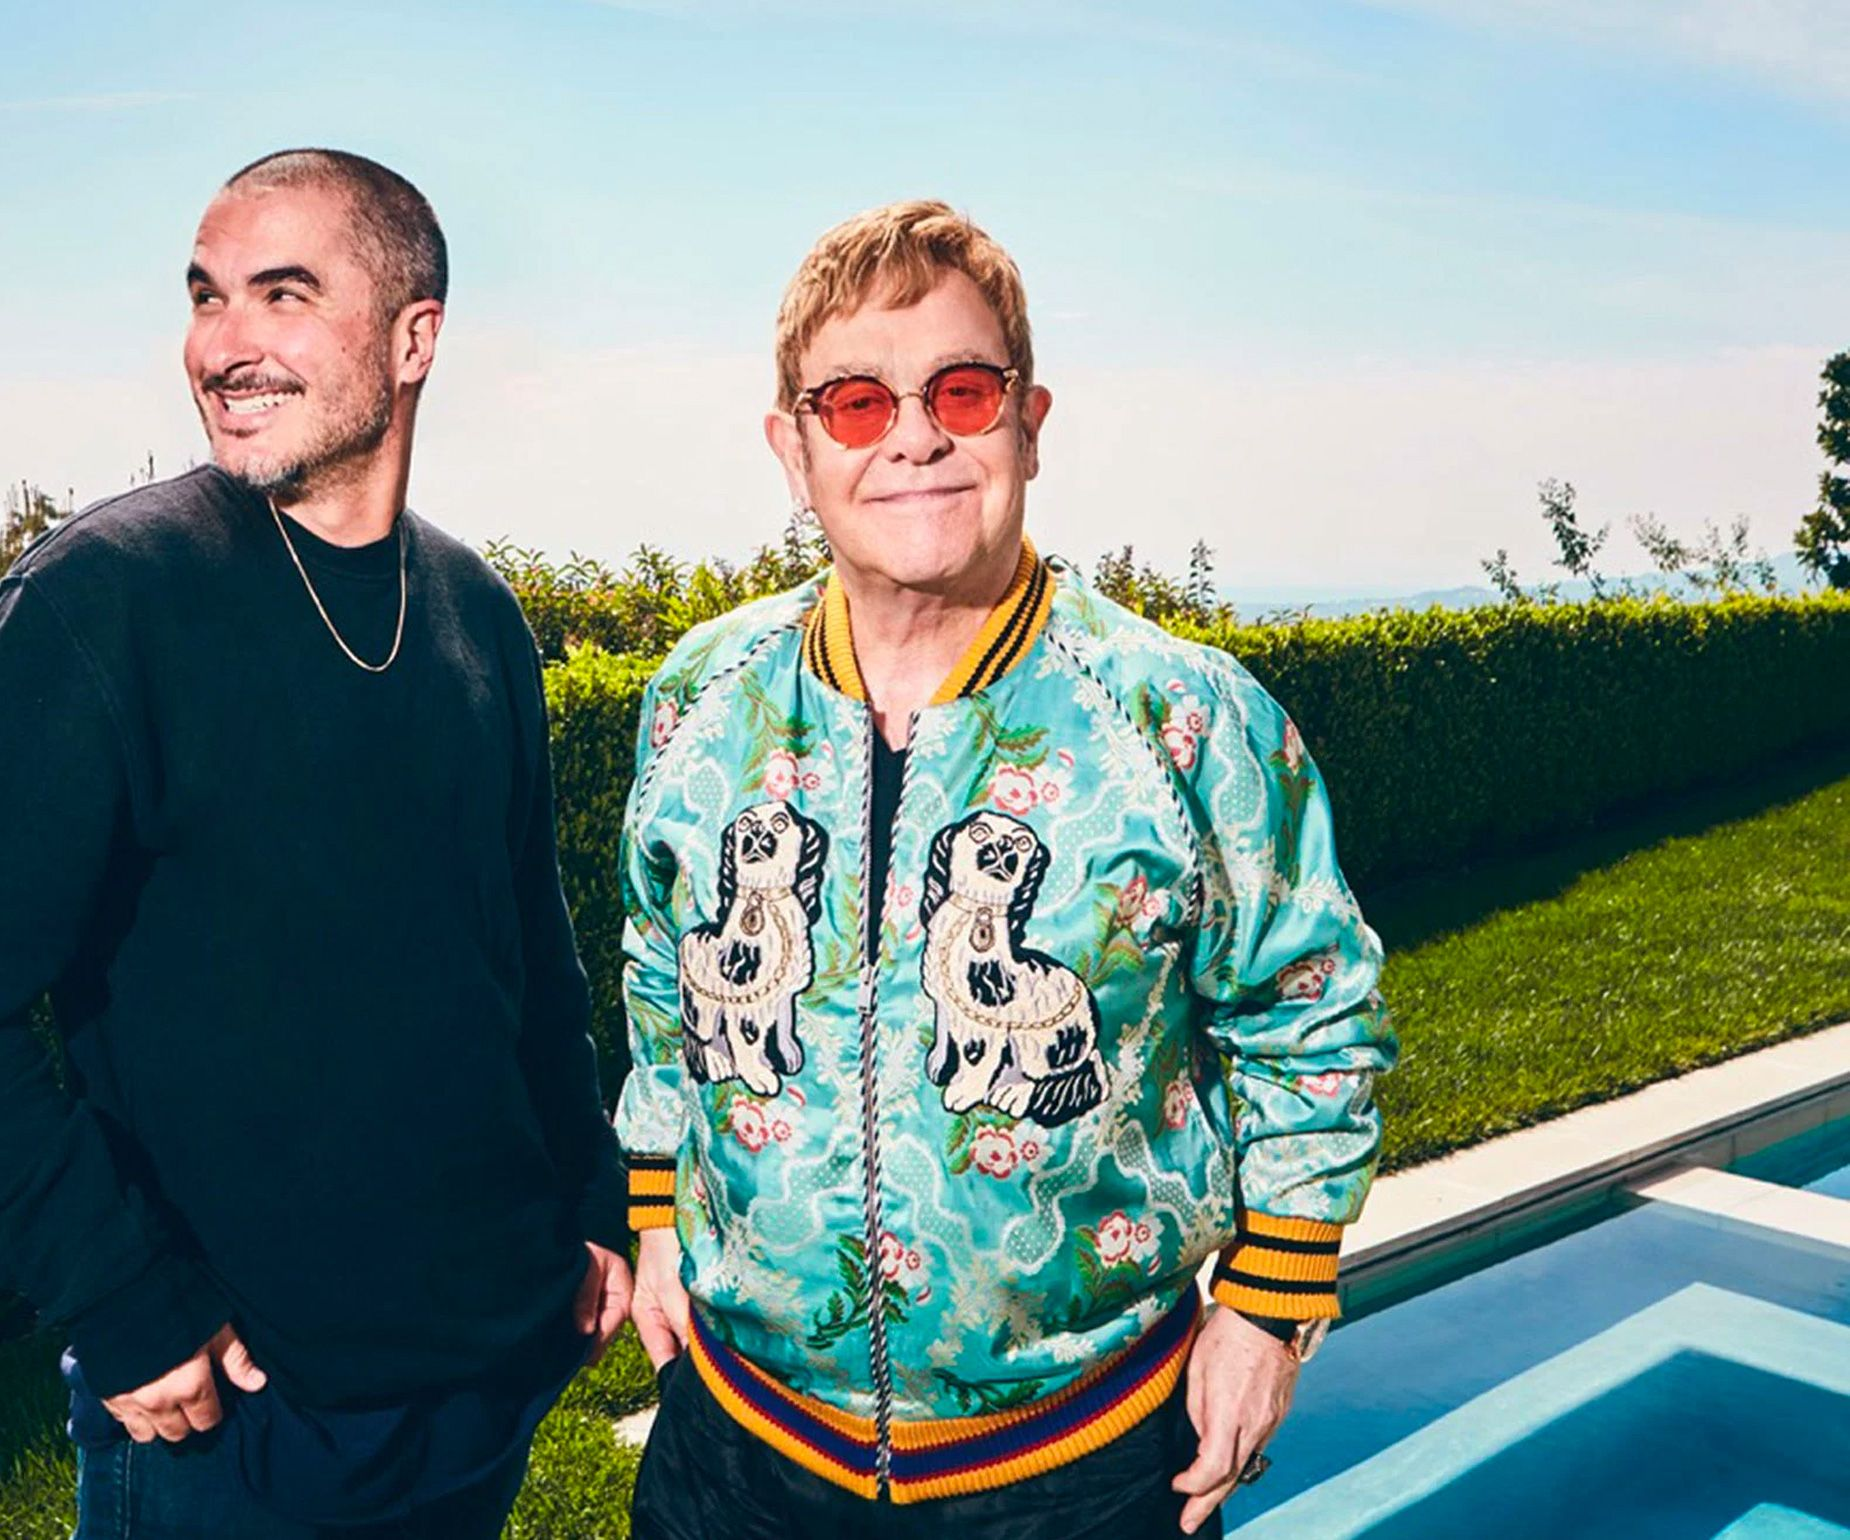 In the week leading up to the party, Elton sat down with Apple Music's Beats 1 Radio DJ Zane Lowe for a wonderfully casual hour-long interview that covered many decades and aspects of his career.